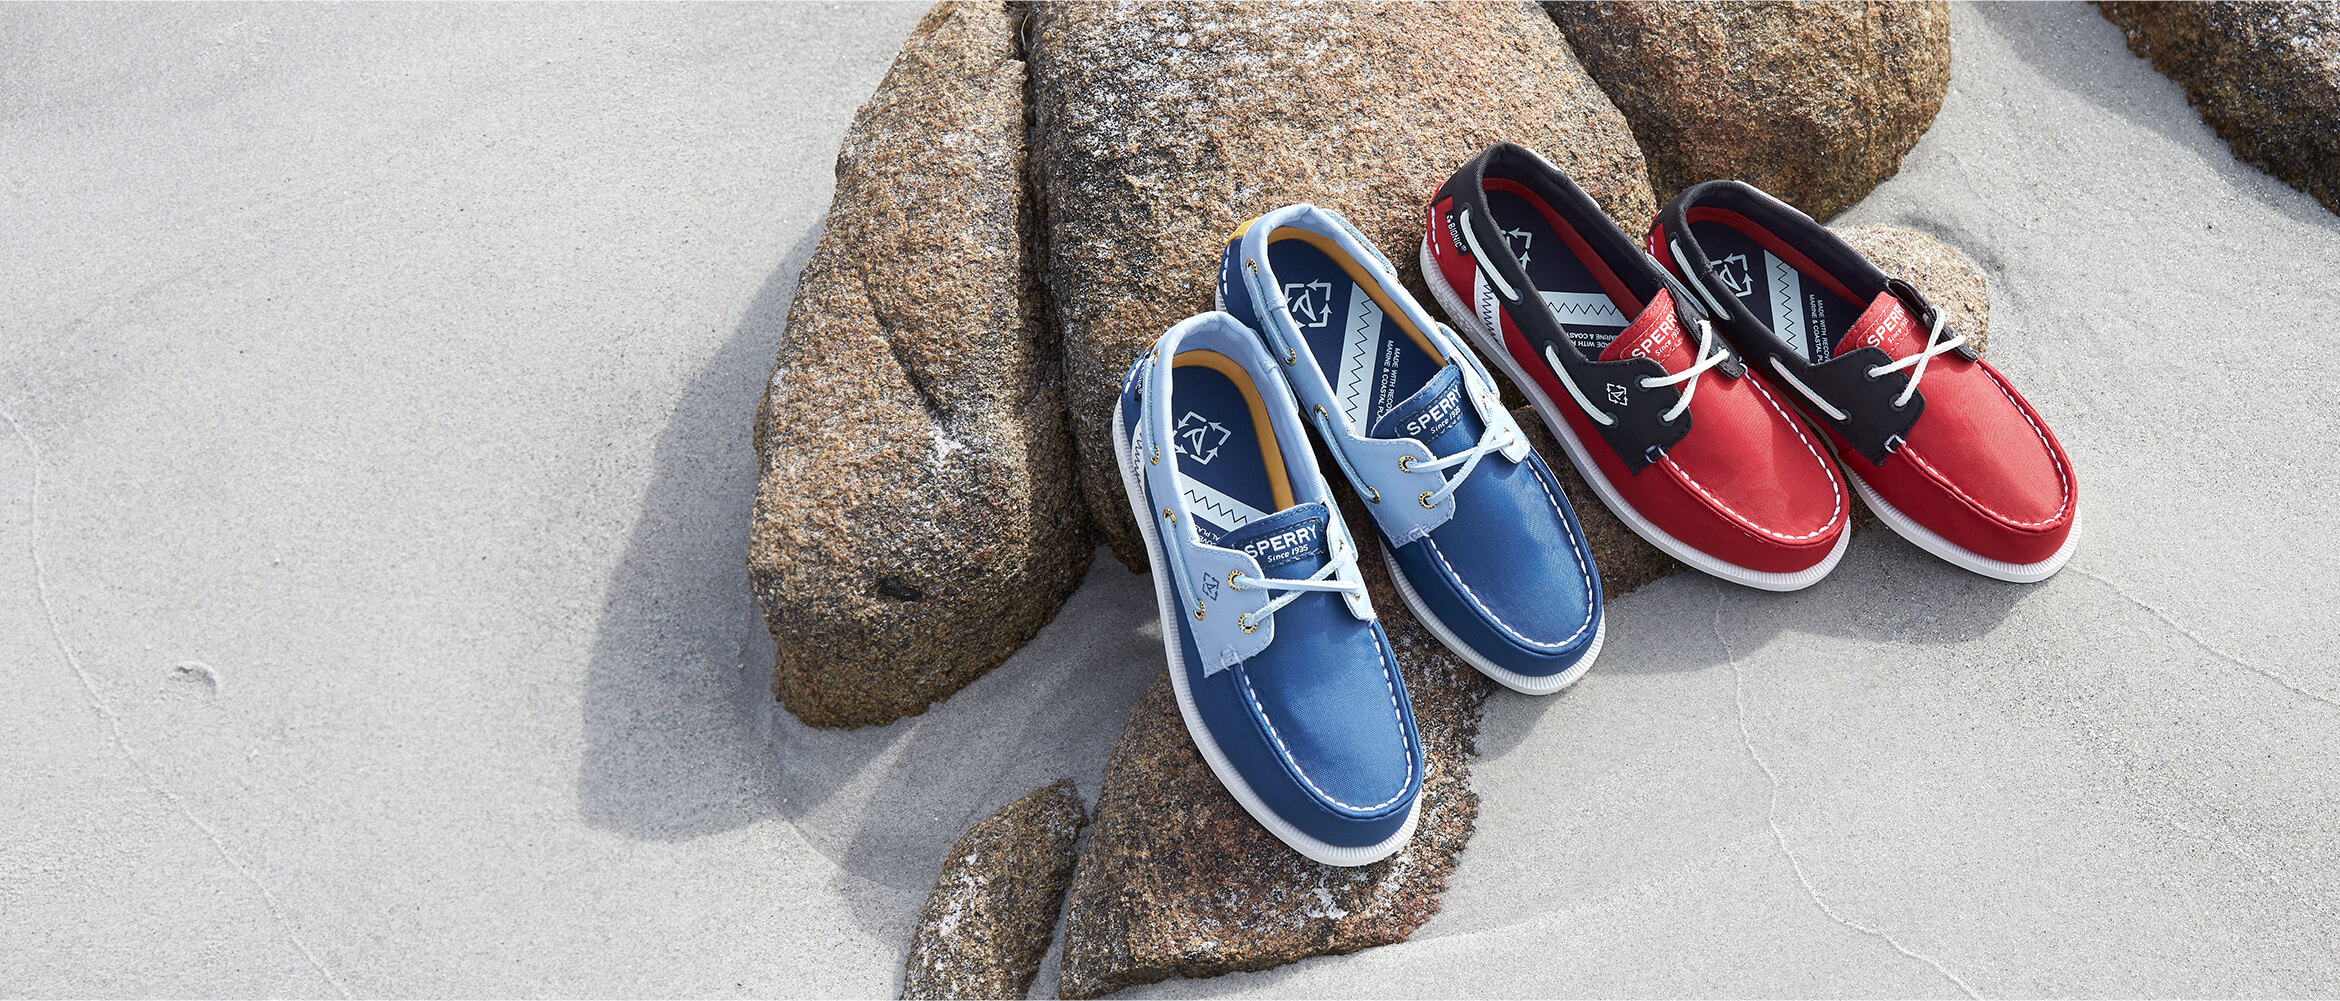 a0ef0b76abbcc Kids' Shoes & Sneakers for Boys & Girls | Sperry